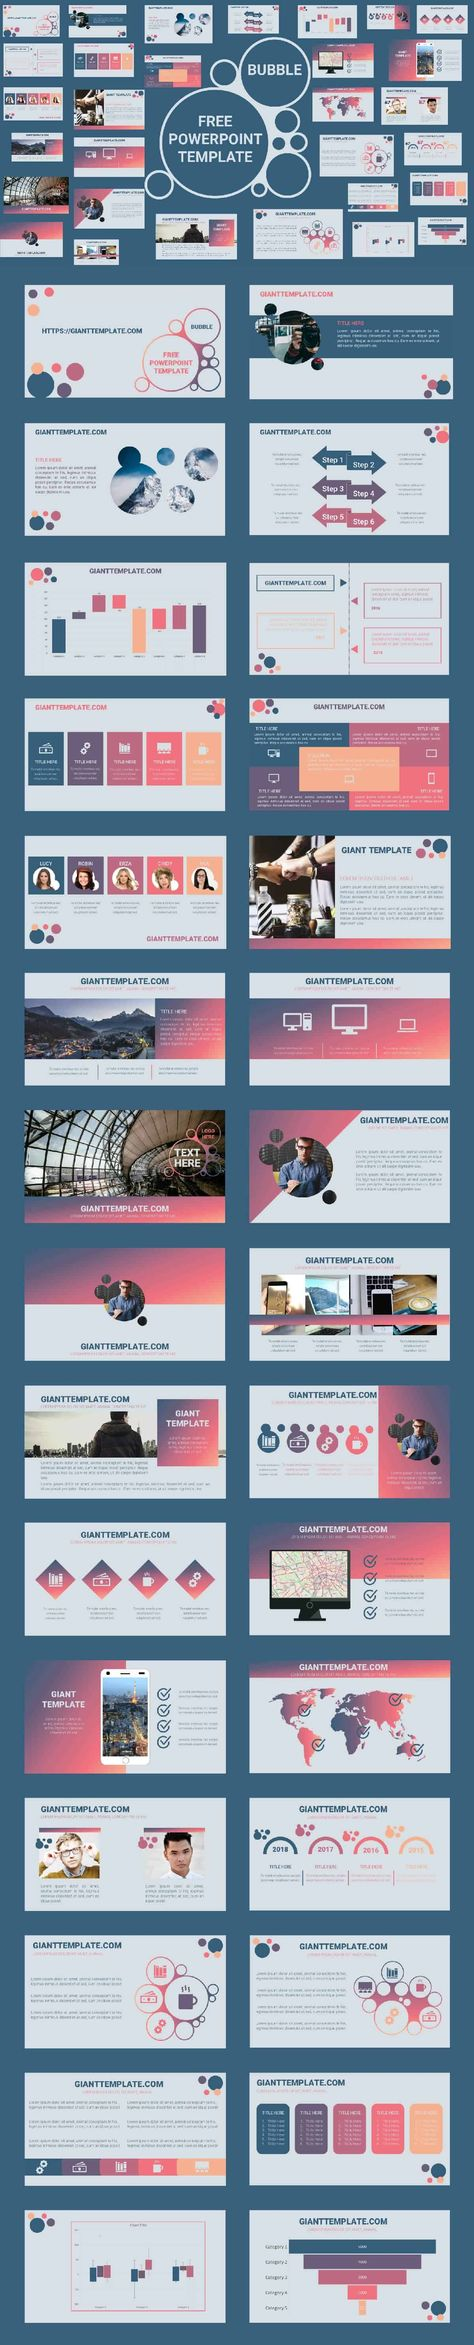 free download morph powerpoint template